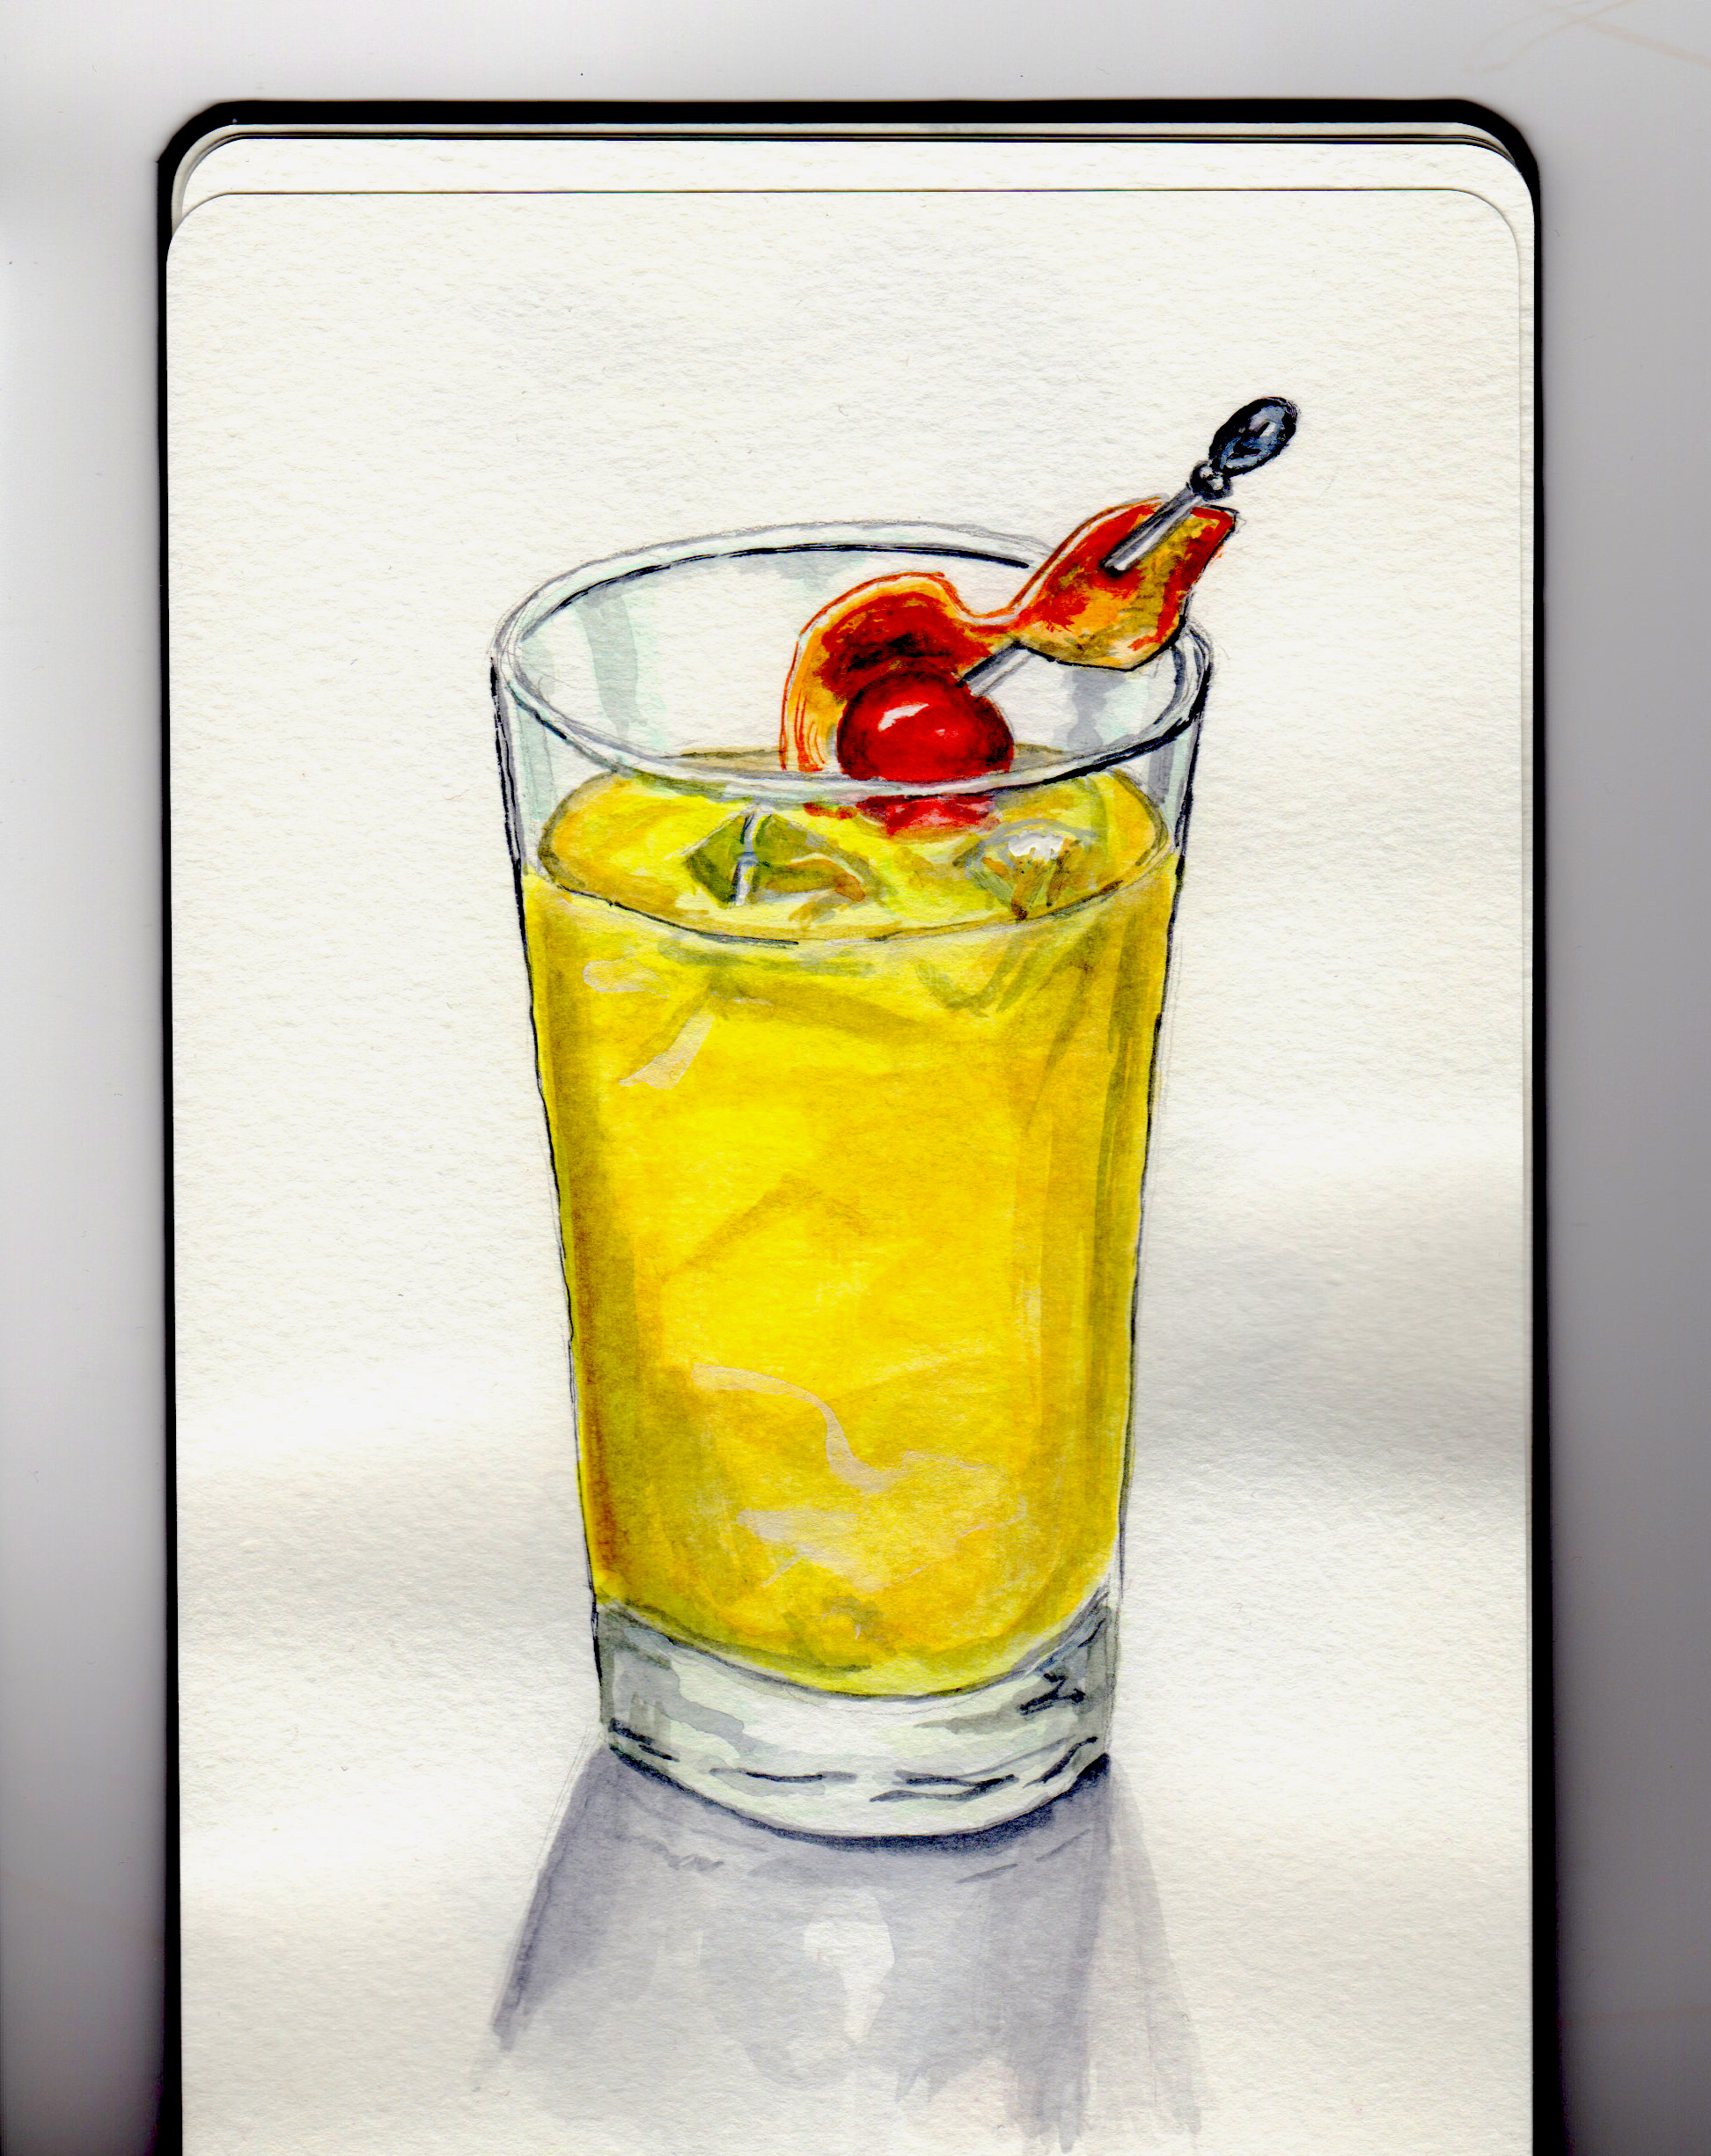 National Harvey Wallbanger Day